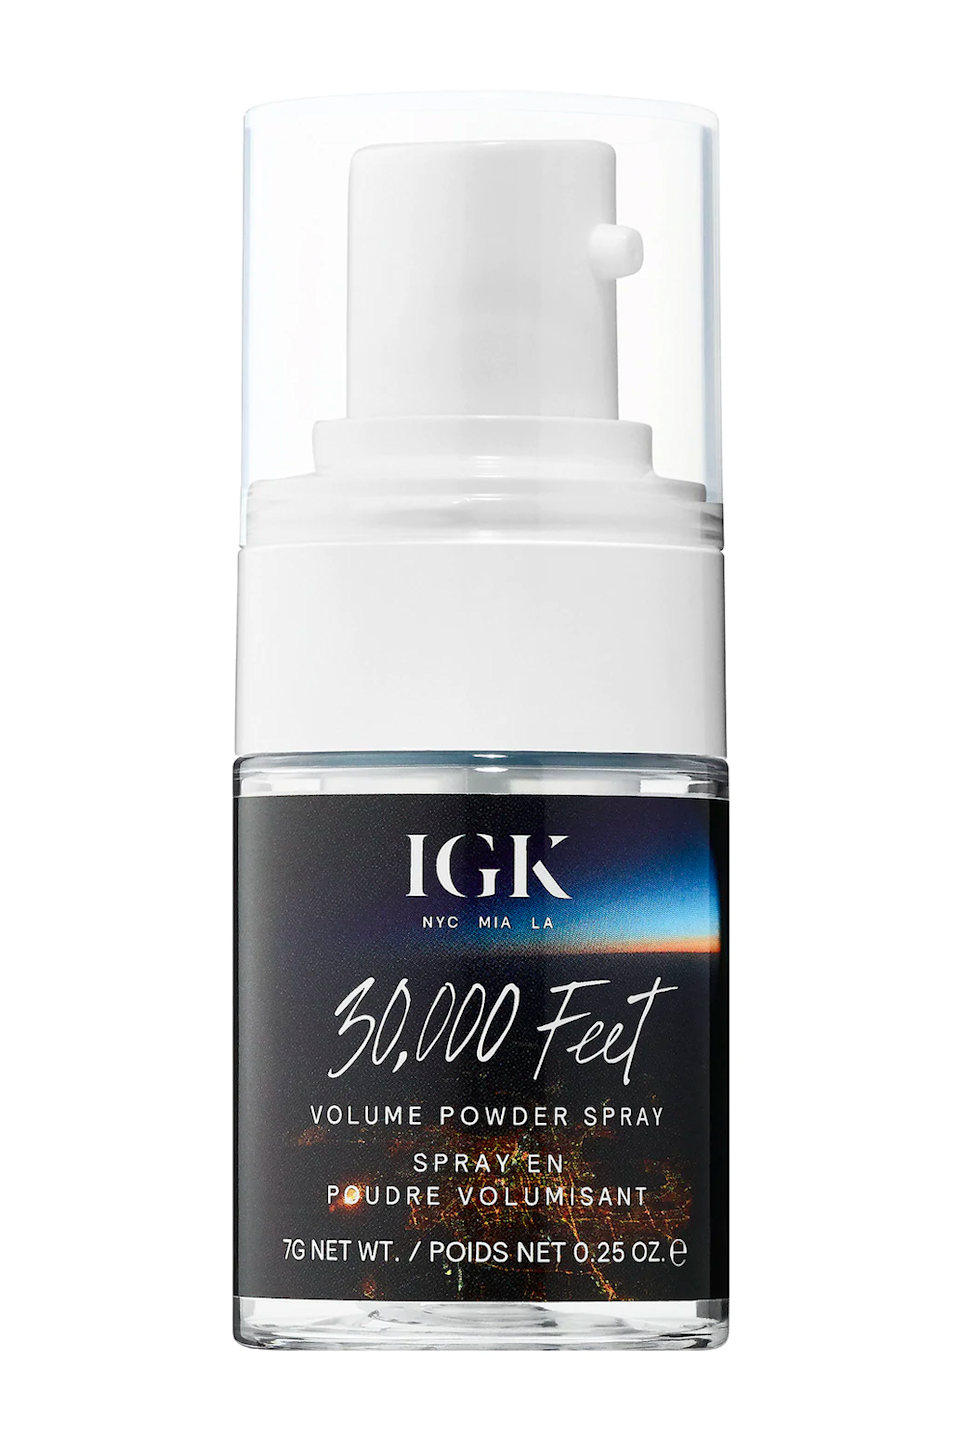 """<p><strong>IGK</strong></p><p>sephora.com</p><p><strong>$32.00</strong></p><p><a href=""""https://go.redirectingat.com?id=74968X1596630&url=https%3A%2F%2Fwww.sephora.com%2Fproduct%2F30-000-feet-volume-powder-spray-P428238&sref=https%3A%2F%2Fwww.cosmopolitan.com%2Fstyle-beauty%2Fbeauty%2Fg34362098%2Fbest-hair-volumizing-powder%2F"""" rel=""""nofollow noopener"""" target=""""_blank"""" data-ylk=""""slk:Shop Now"""" class=""""link rapid-noclick-resp"""">Shop Now</a></p><p>Where's my fine-hair squad at? Trust me when I say this root-lifting spray is about to be your new go-to. The ultra-lightweight formula is spiked with bentonite clay to <strong>gently add texture and grit to the <a href=""""https://www.cosmopolitan.com/style-beauty/beauty/a19642775/fine-hair-styling-tips/"""" rel=""""nofollow noopener"""" target=""""_blank"""" data-ylk=""""slk:finest, flattest hair"""" class=""""link rapid-noclick-resp"""">finest, flattest hair</a></strong>, and since it goes on totally clear, you don't have to worry about any white marks showing up. I like to keep this bb close by for quick touchups.</p>"""